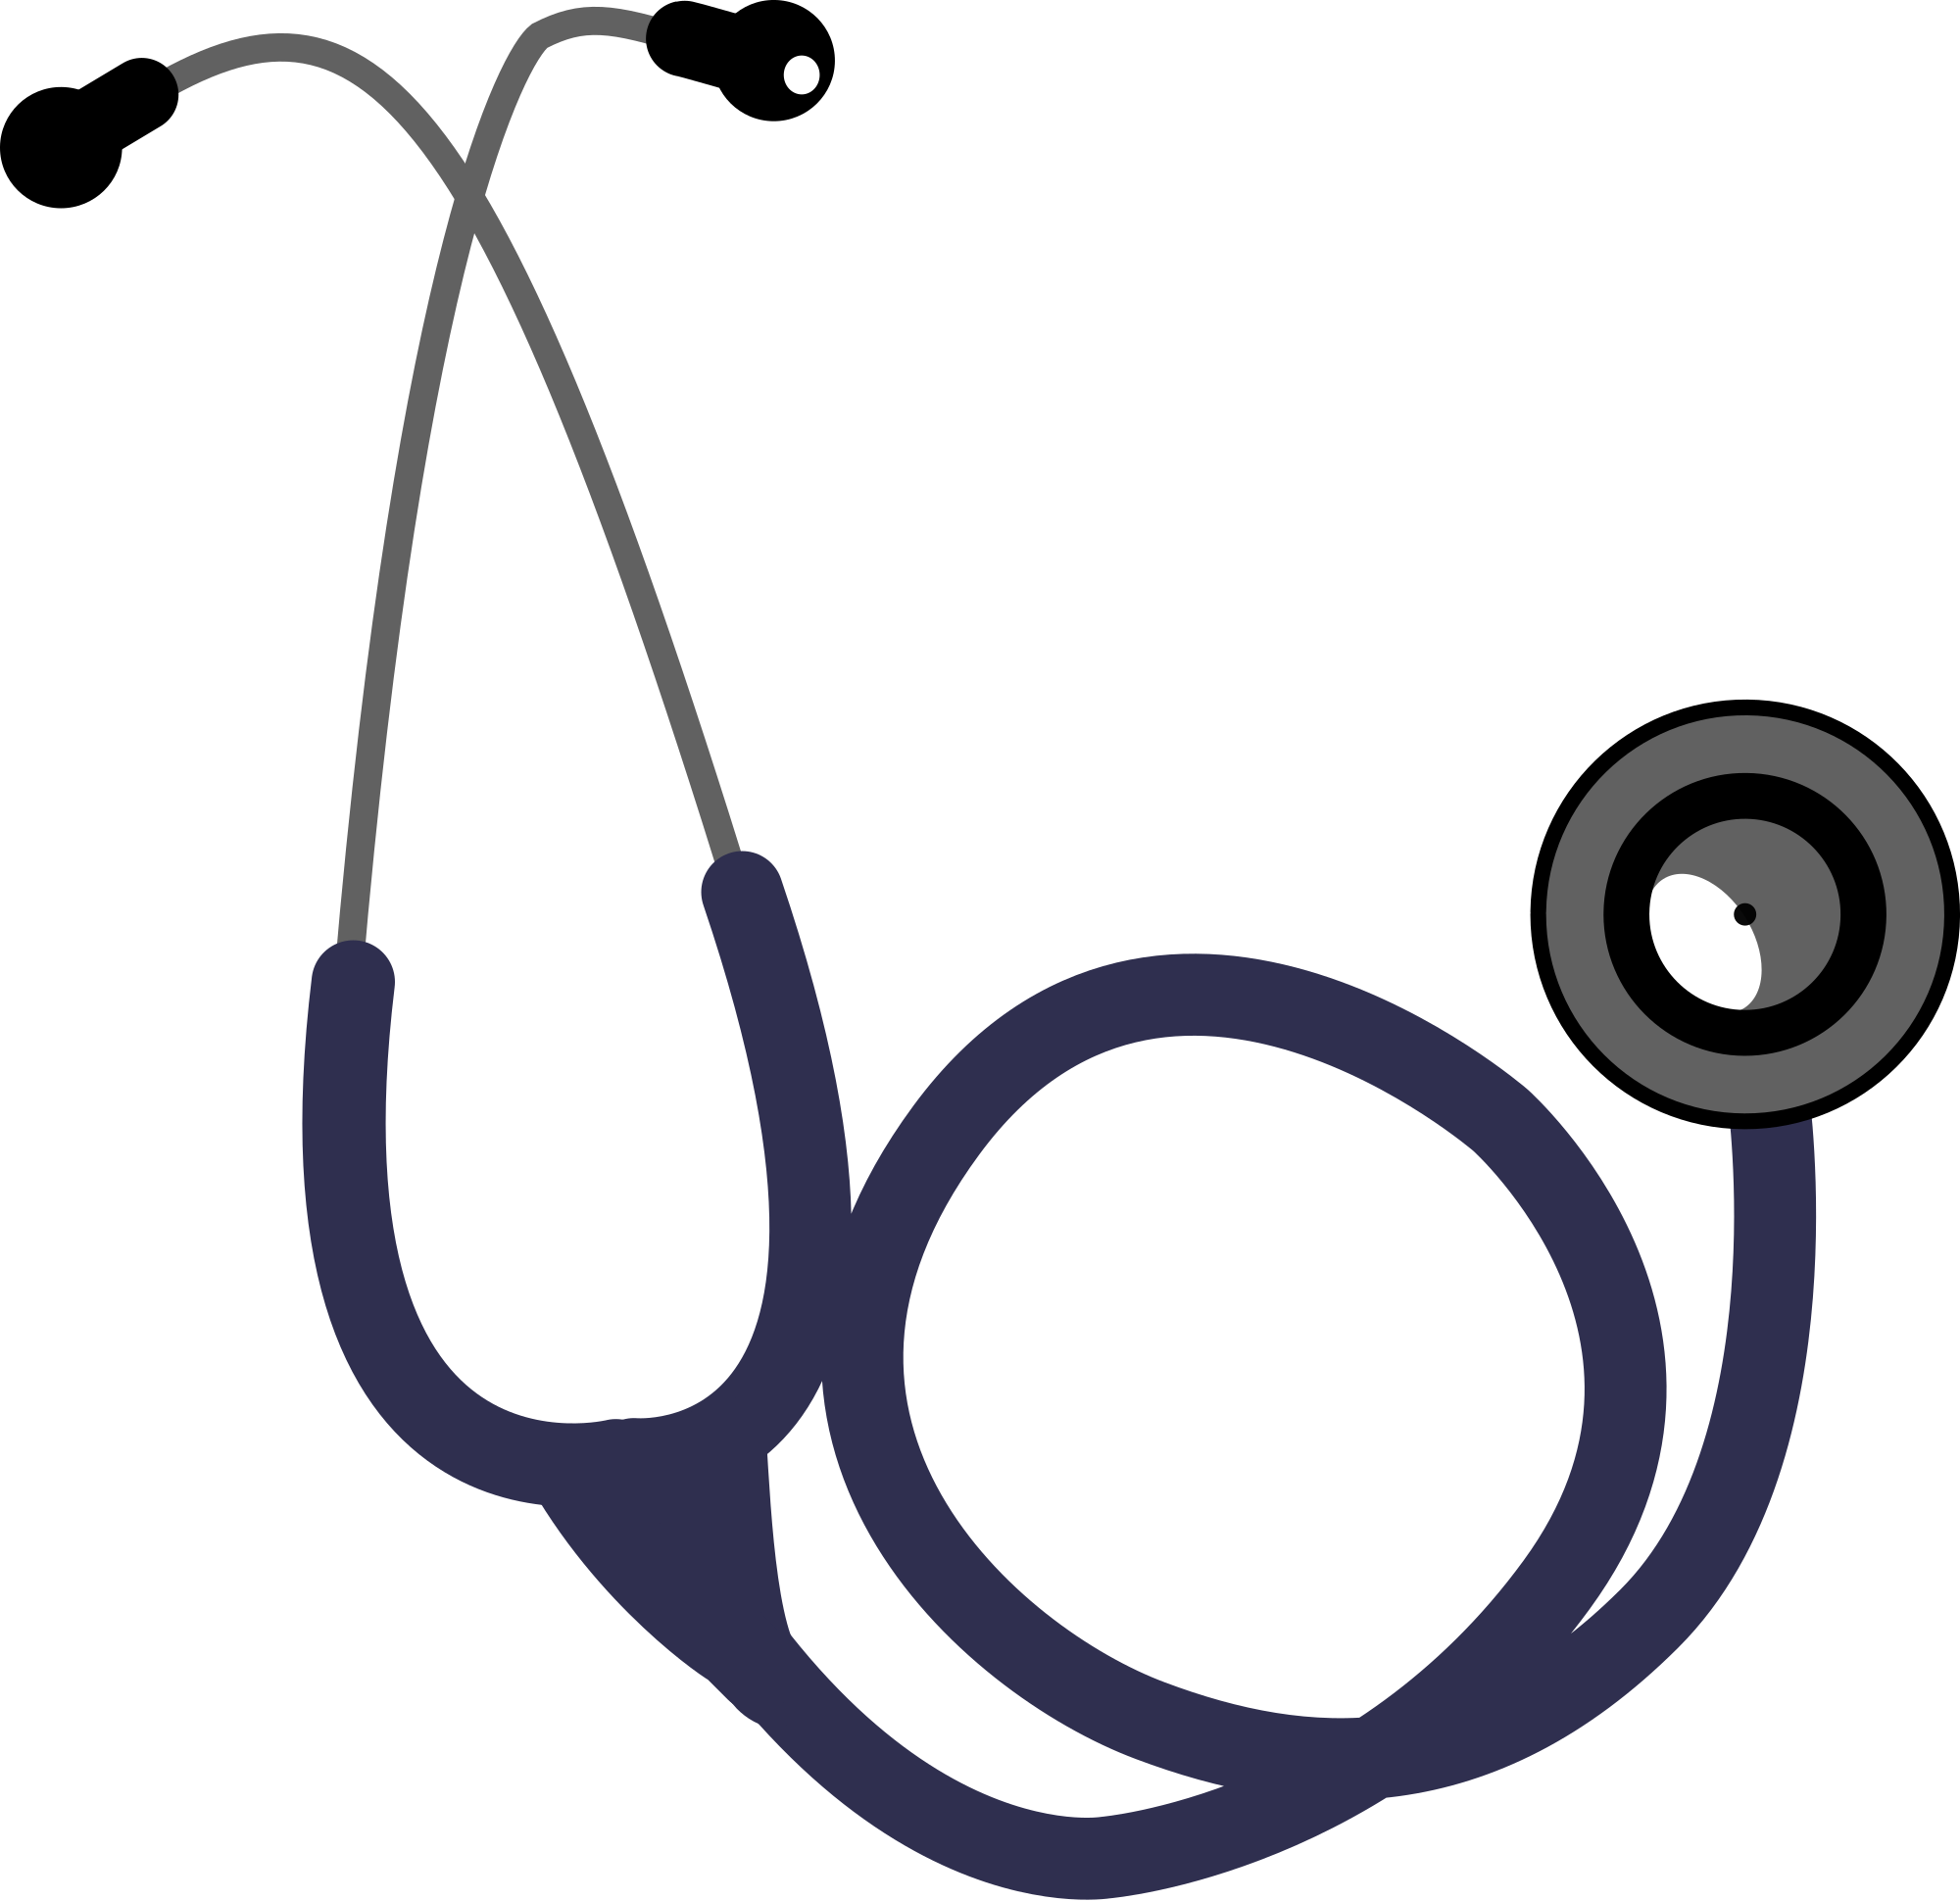 2000x1940 Collection Of Free Stethoscope Vector Circle. Download On Ubisafe